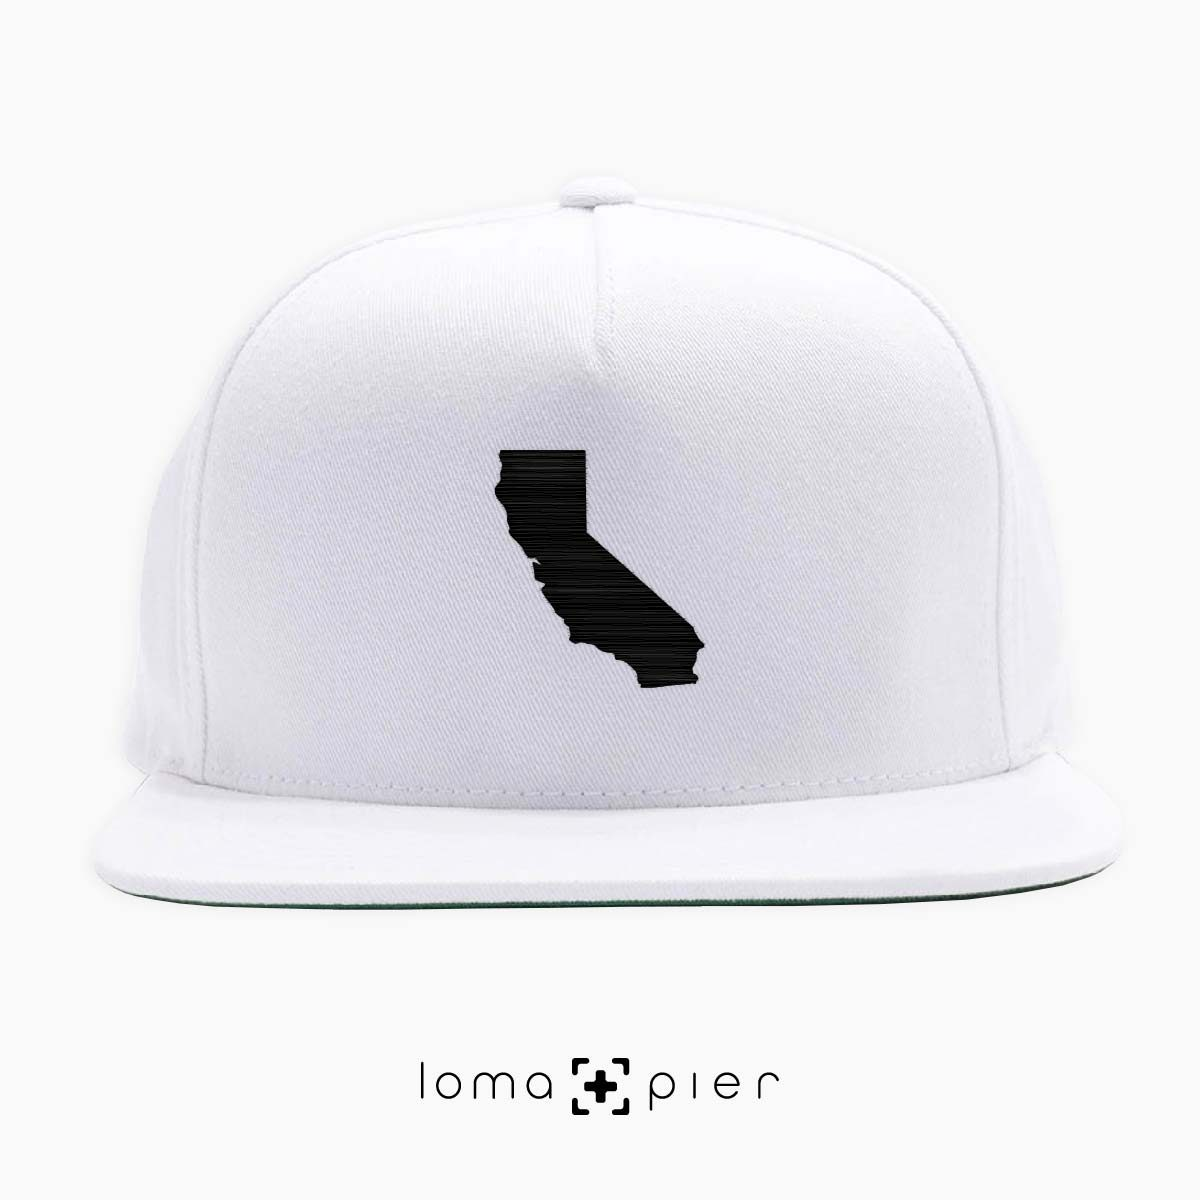 CALIFORNIA silhouette icon embroidered on a white classic snapback hat by loma+pier hat store